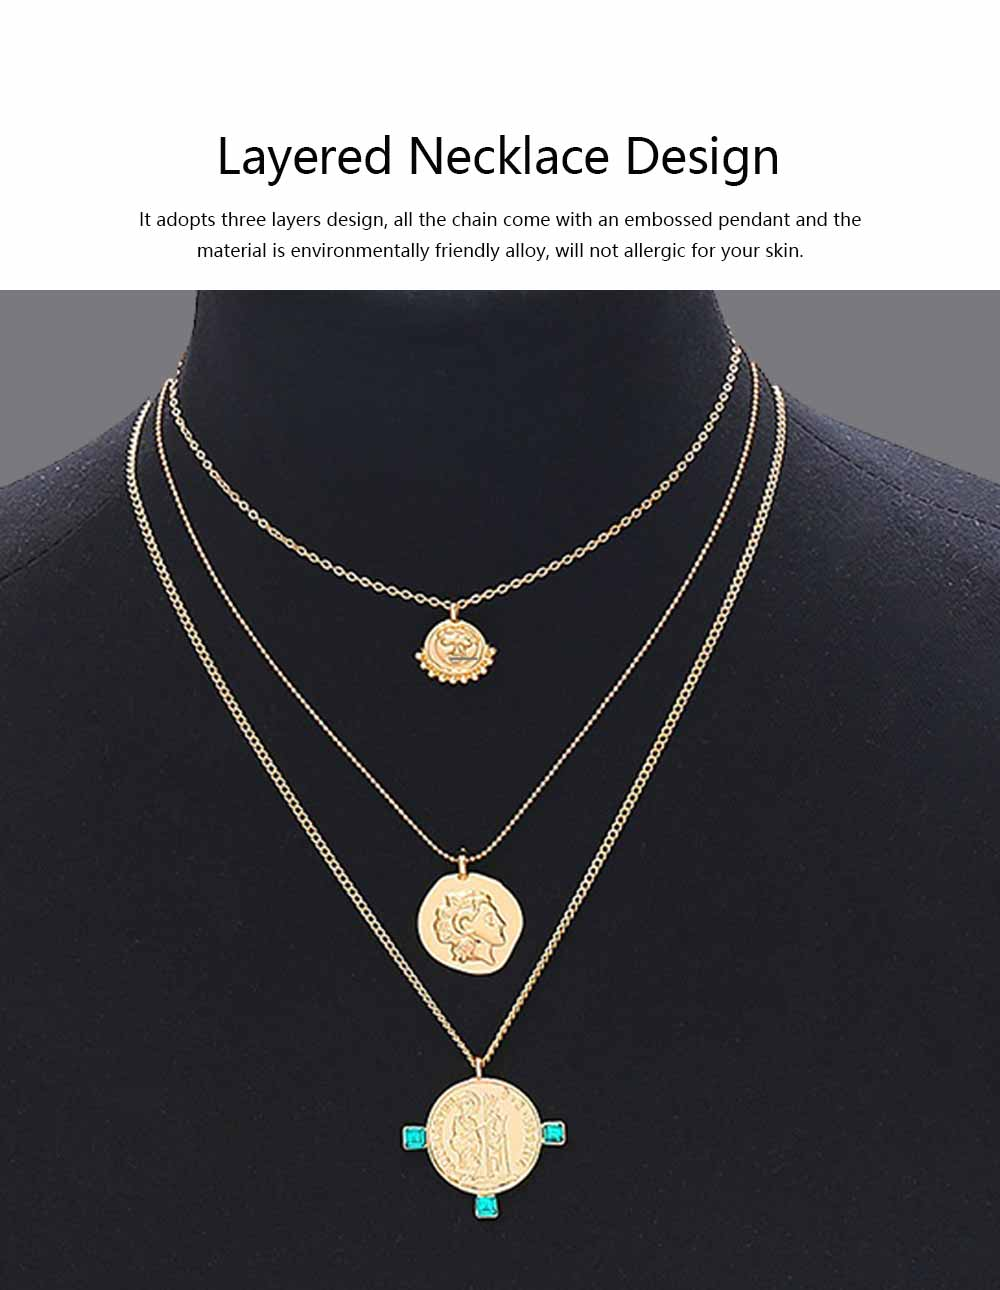 Retro Portrait Item Sweater Chain for Women, Multilayer Personality Pendant Necklace, Gold Silver Long Chain Necklace for Girls 2